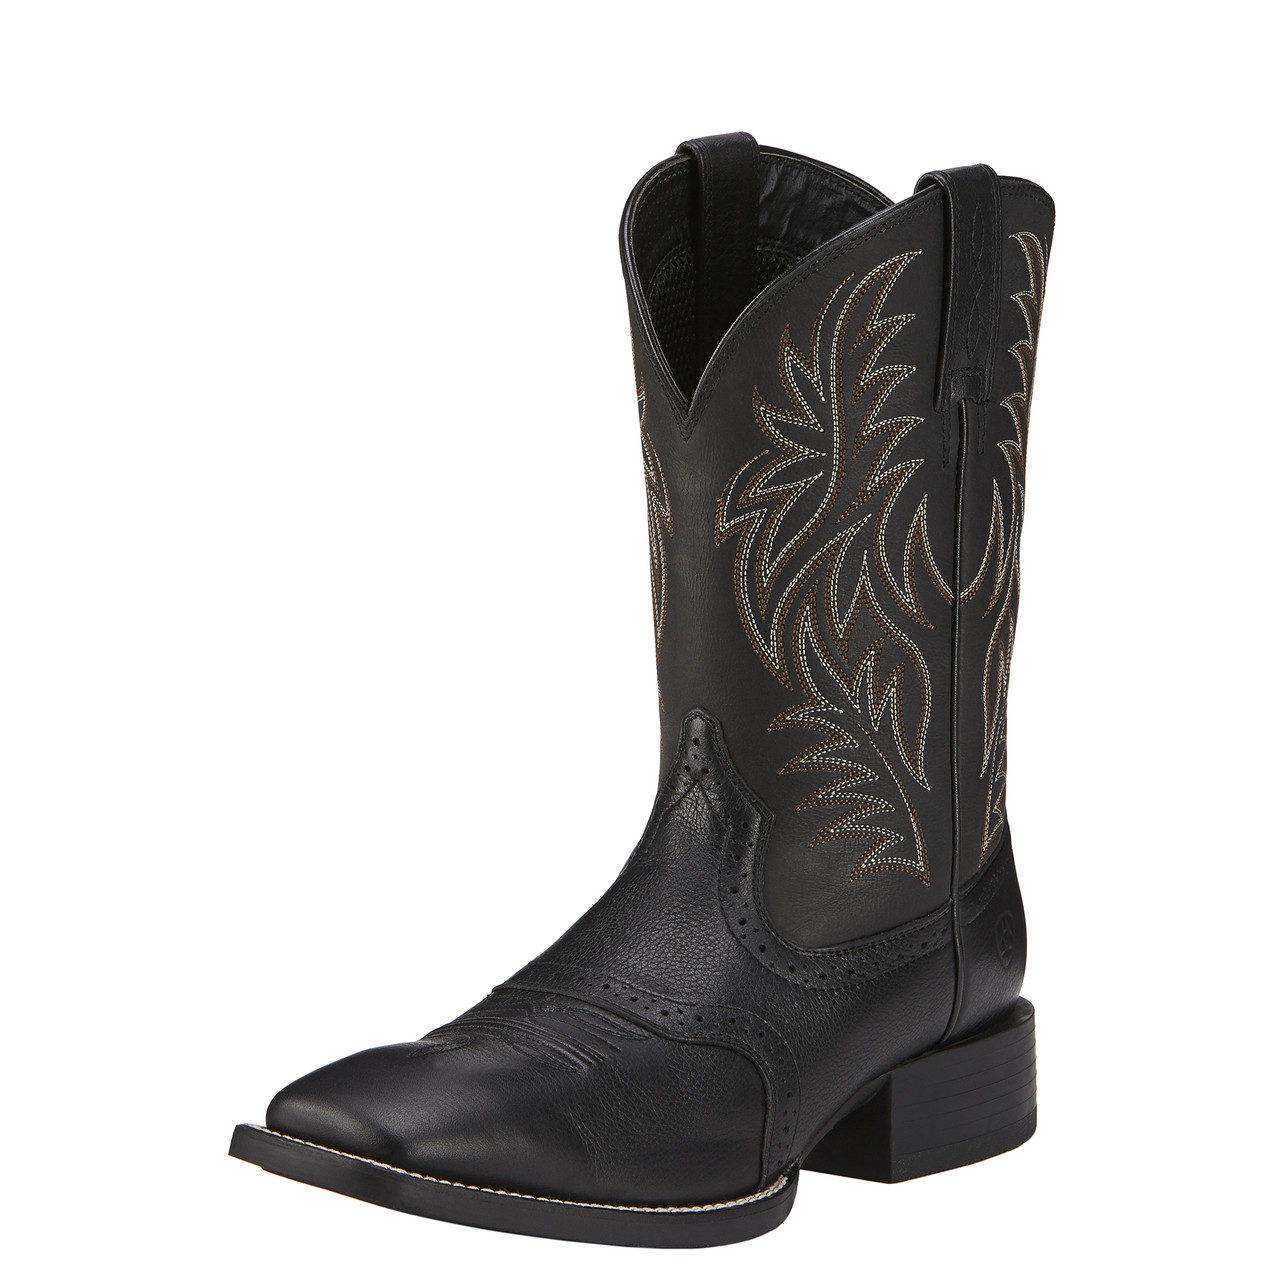 3529b146328 Ariat Mens Black Sport Western Wide Square Toe Boots 10016292